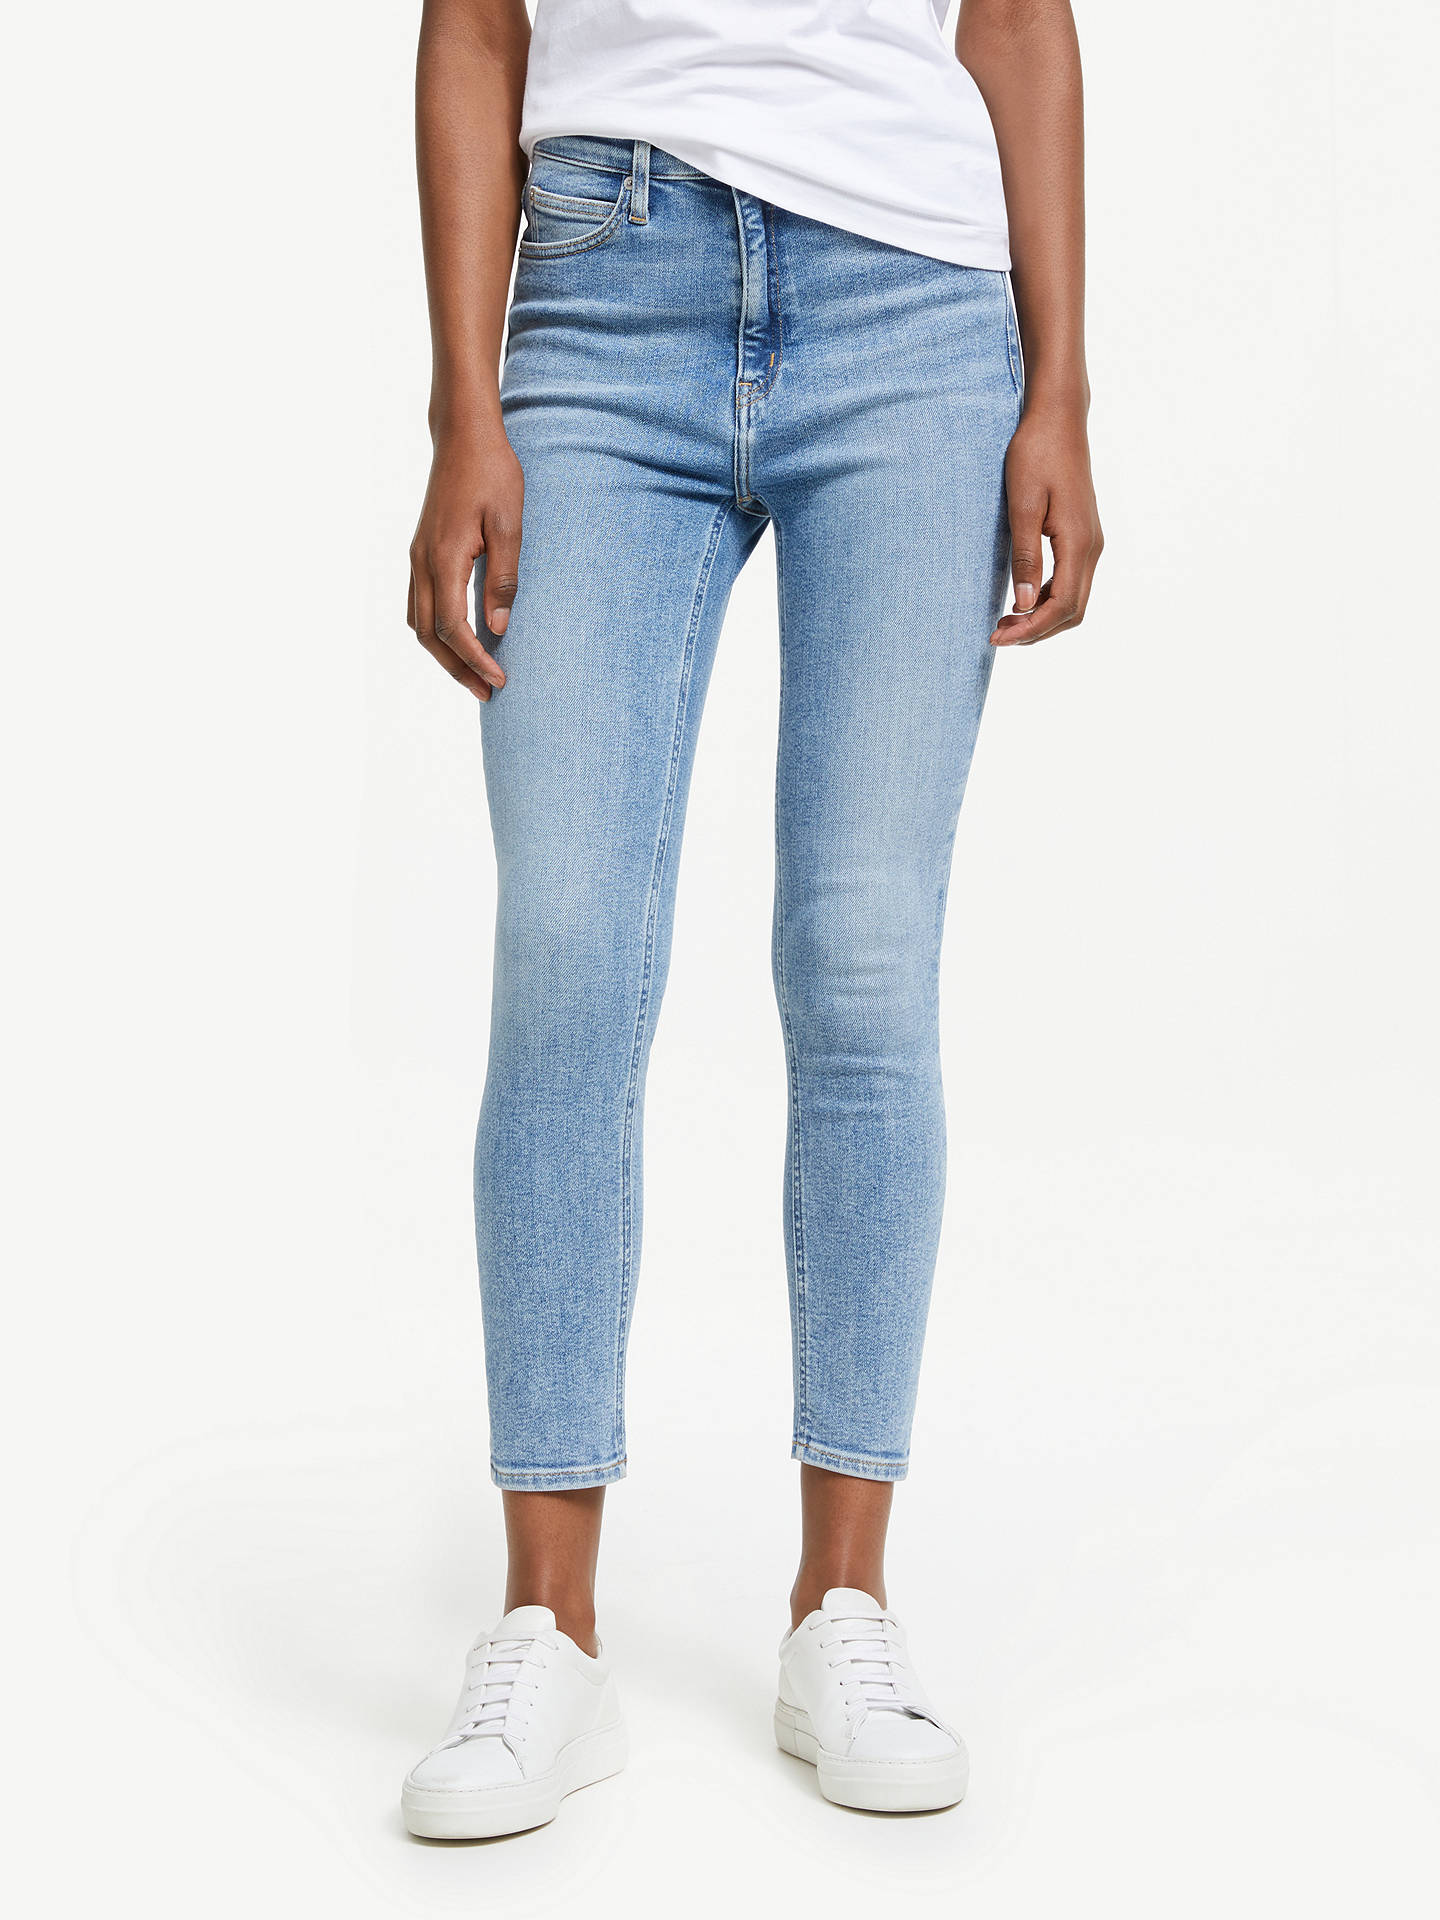 936da77be4c32 Buy Calvin Klein High Rise Skinny Ankle Jeans, Iconic Everest, 27 Online at  johnlewis ...